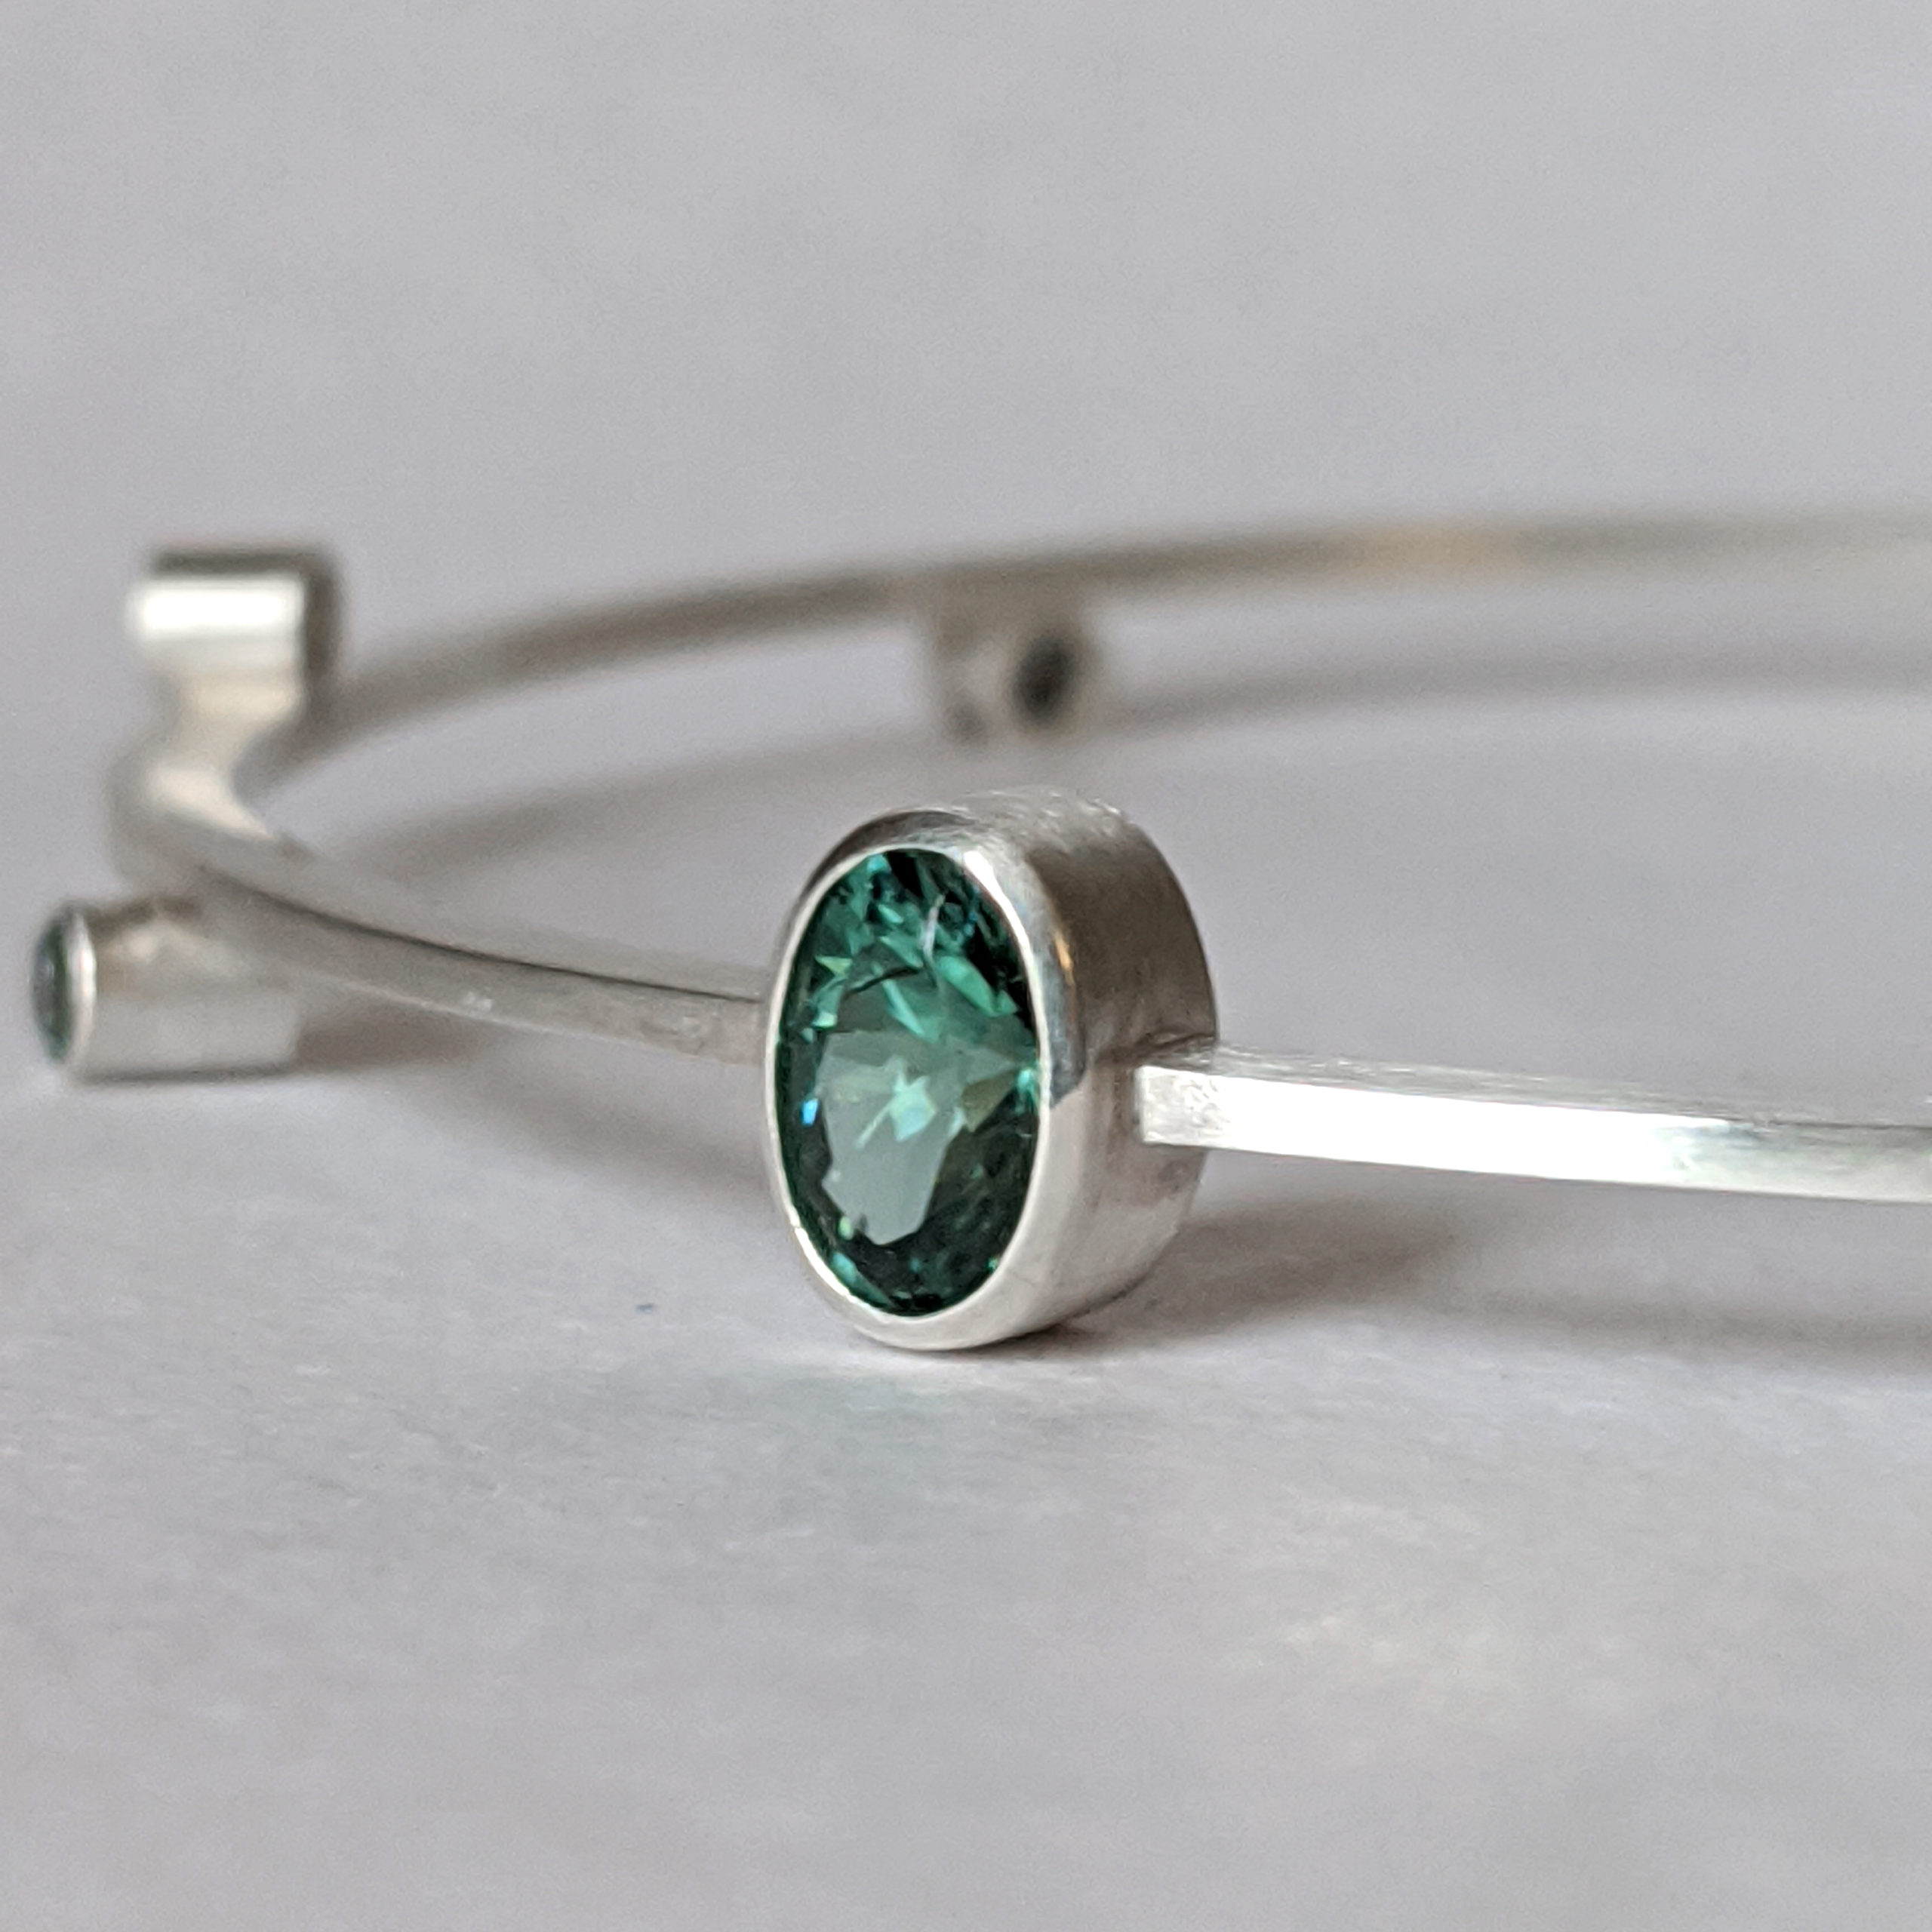 Oval Bangle Bracelet in Silver with Blue-Green Indicolite Tourmaline and Green Sapphires